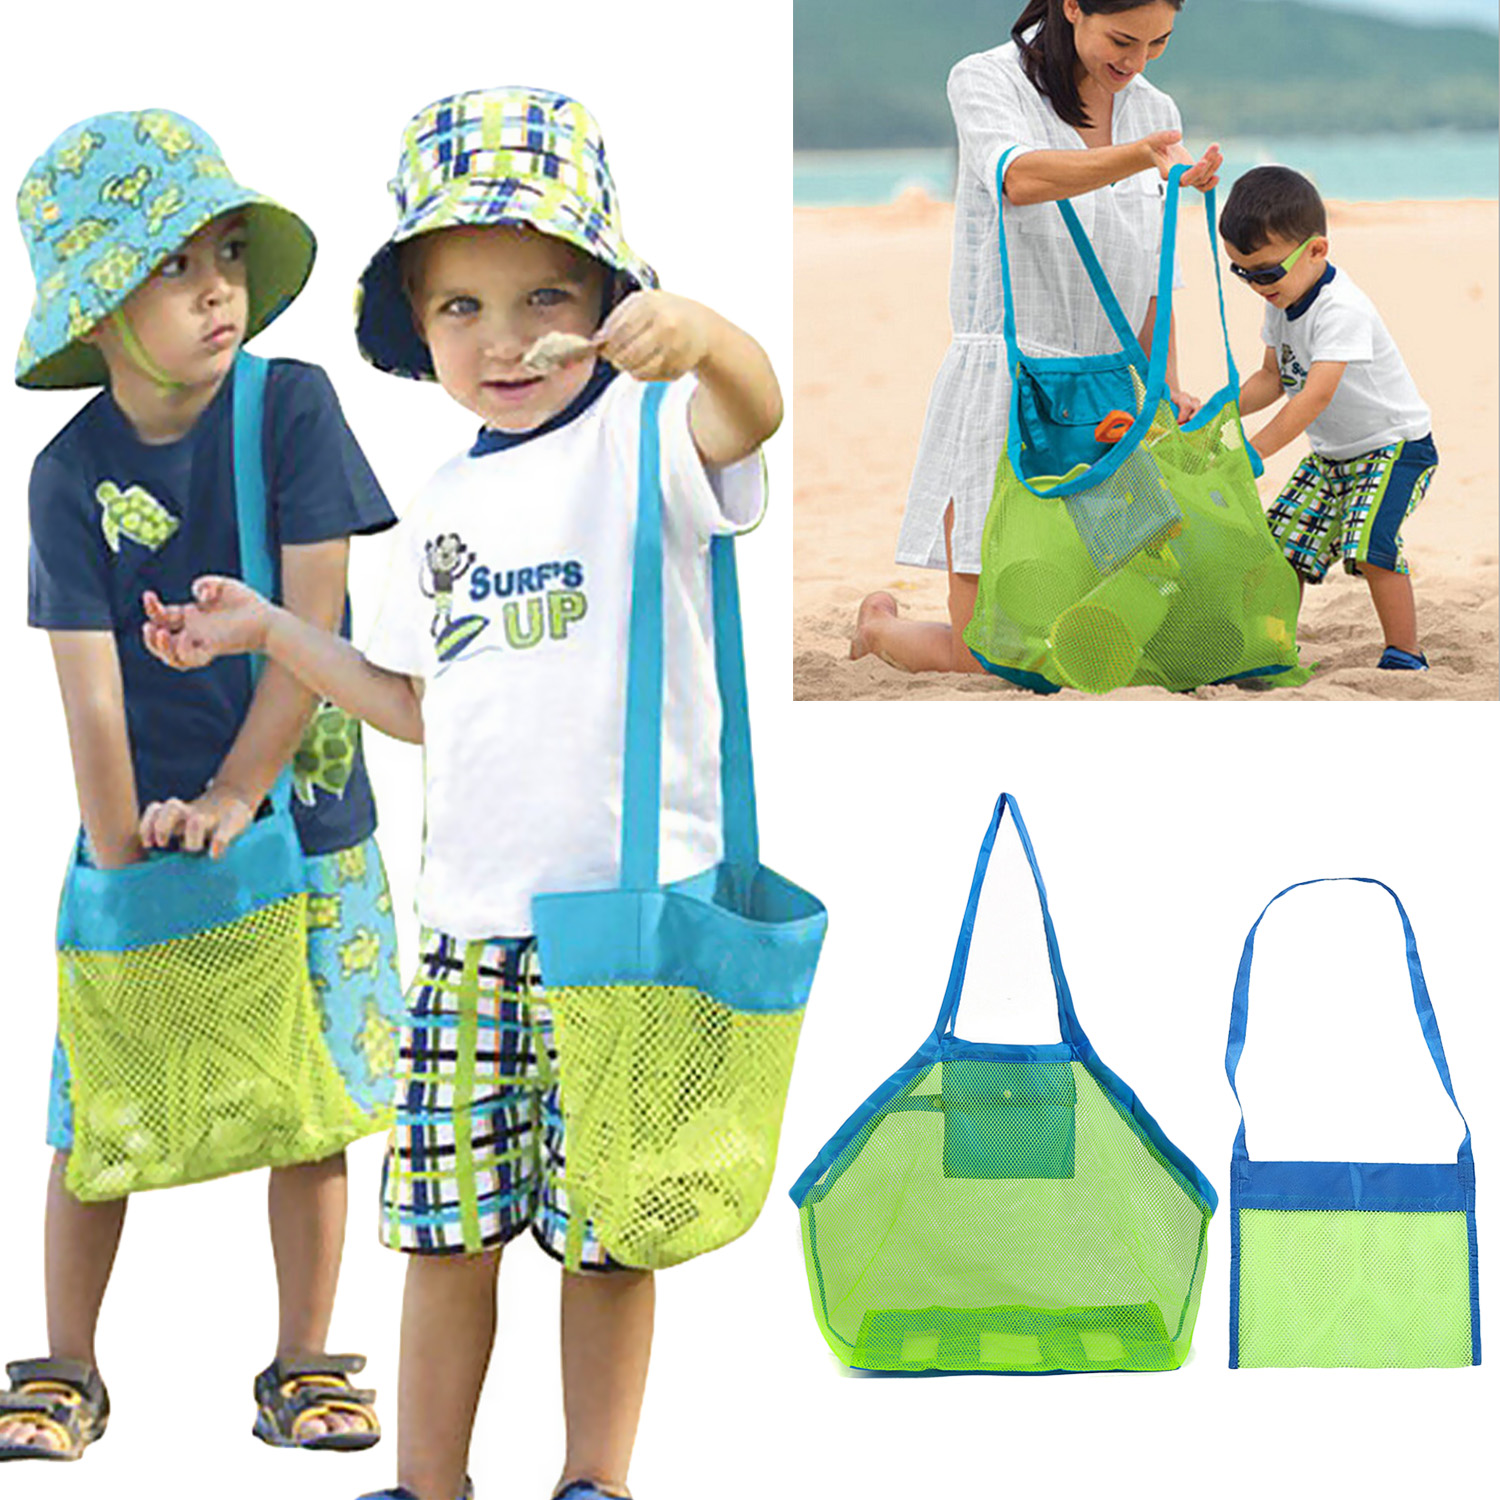 2Pcs Beach Bath Creative Toys Portable Reusable Foldable Mesh Tote Bags Toy Kids Towels Shell Pool Swimsuits Basket Storage Gift